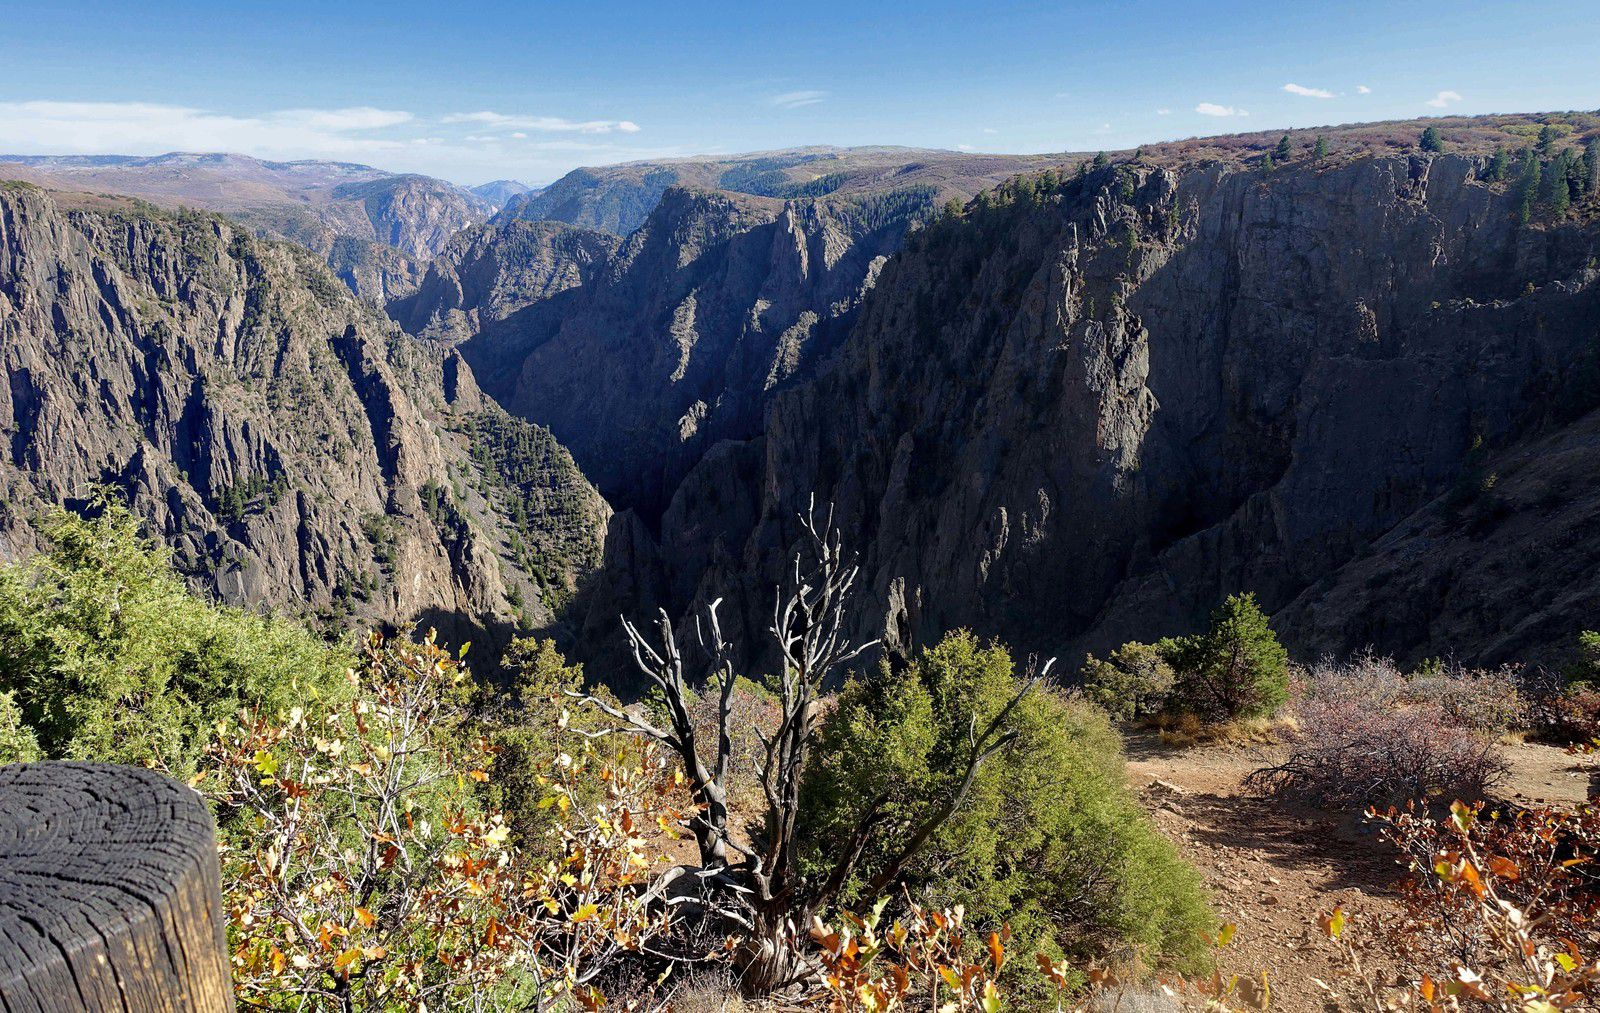 ALBUM AUTOMNE 2018 :  BLACK CANYON OF THE GUNNISON - DELTA